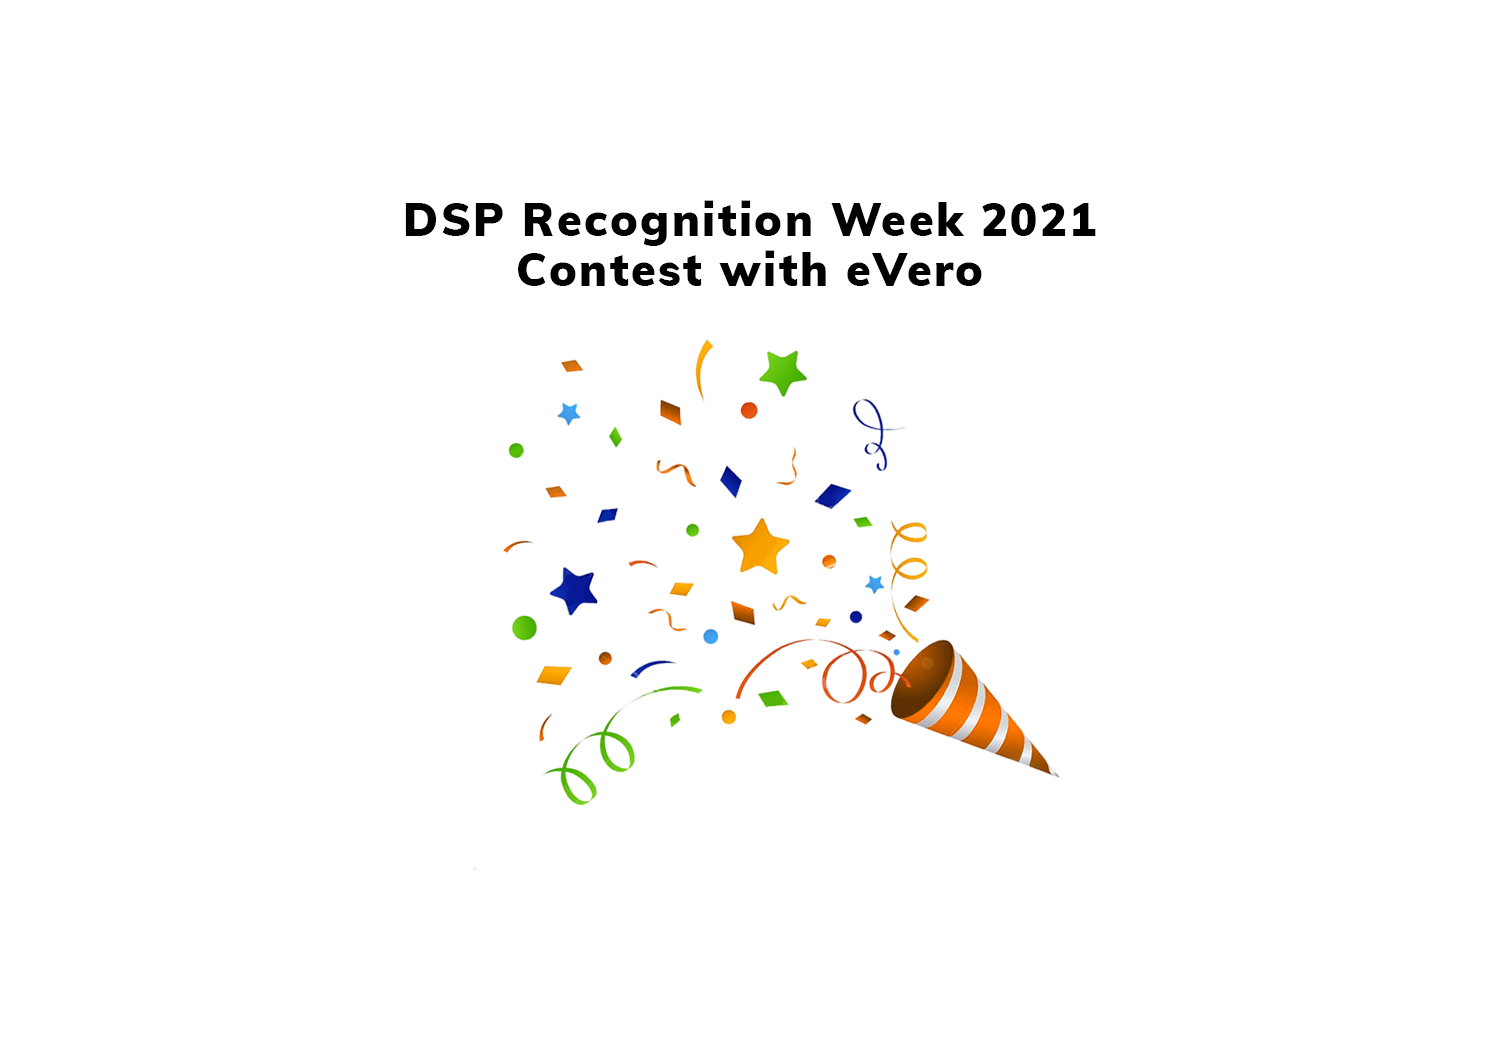 Direct Support Professional Recognition Week 2021 Contest with eVero!